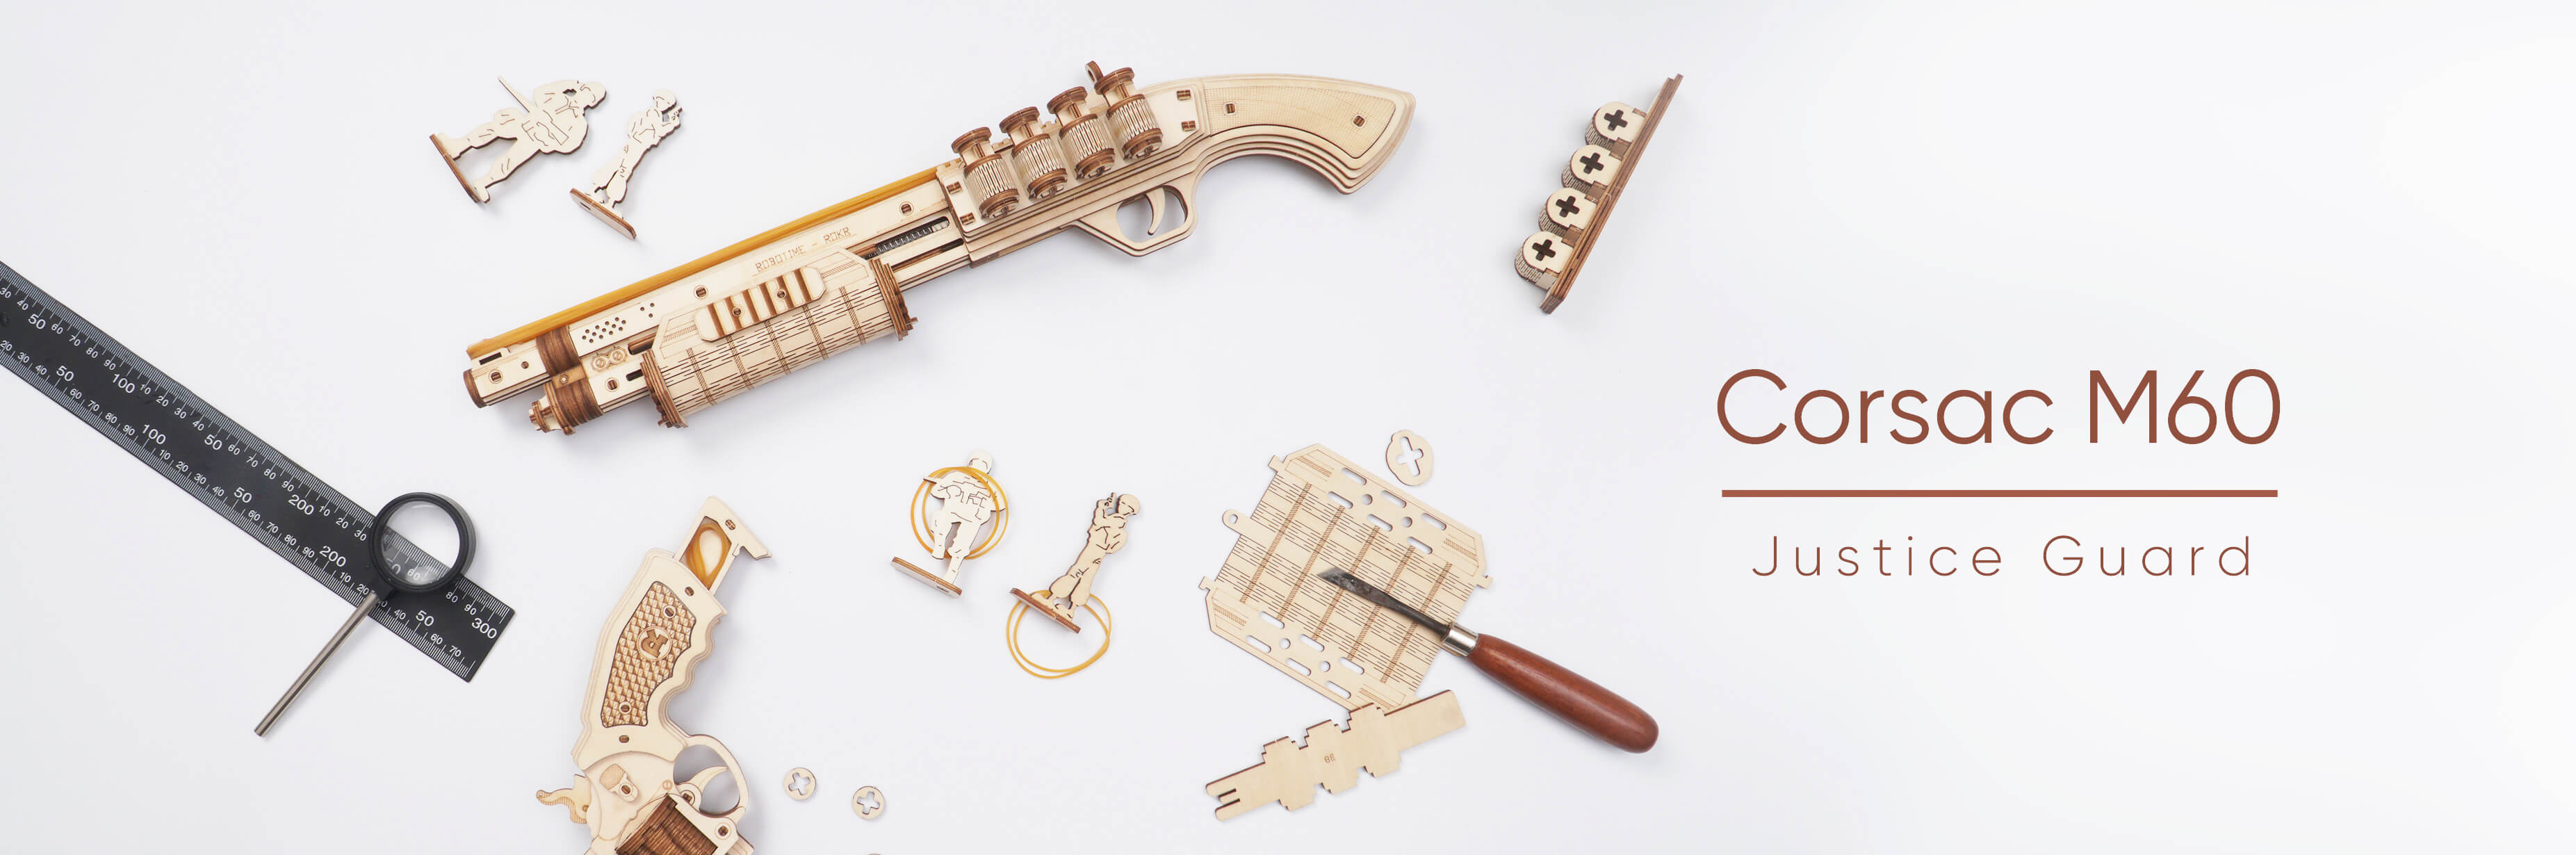 new arrival of ROKR toy gun models--Justice Guard series with safe rubber band bullets